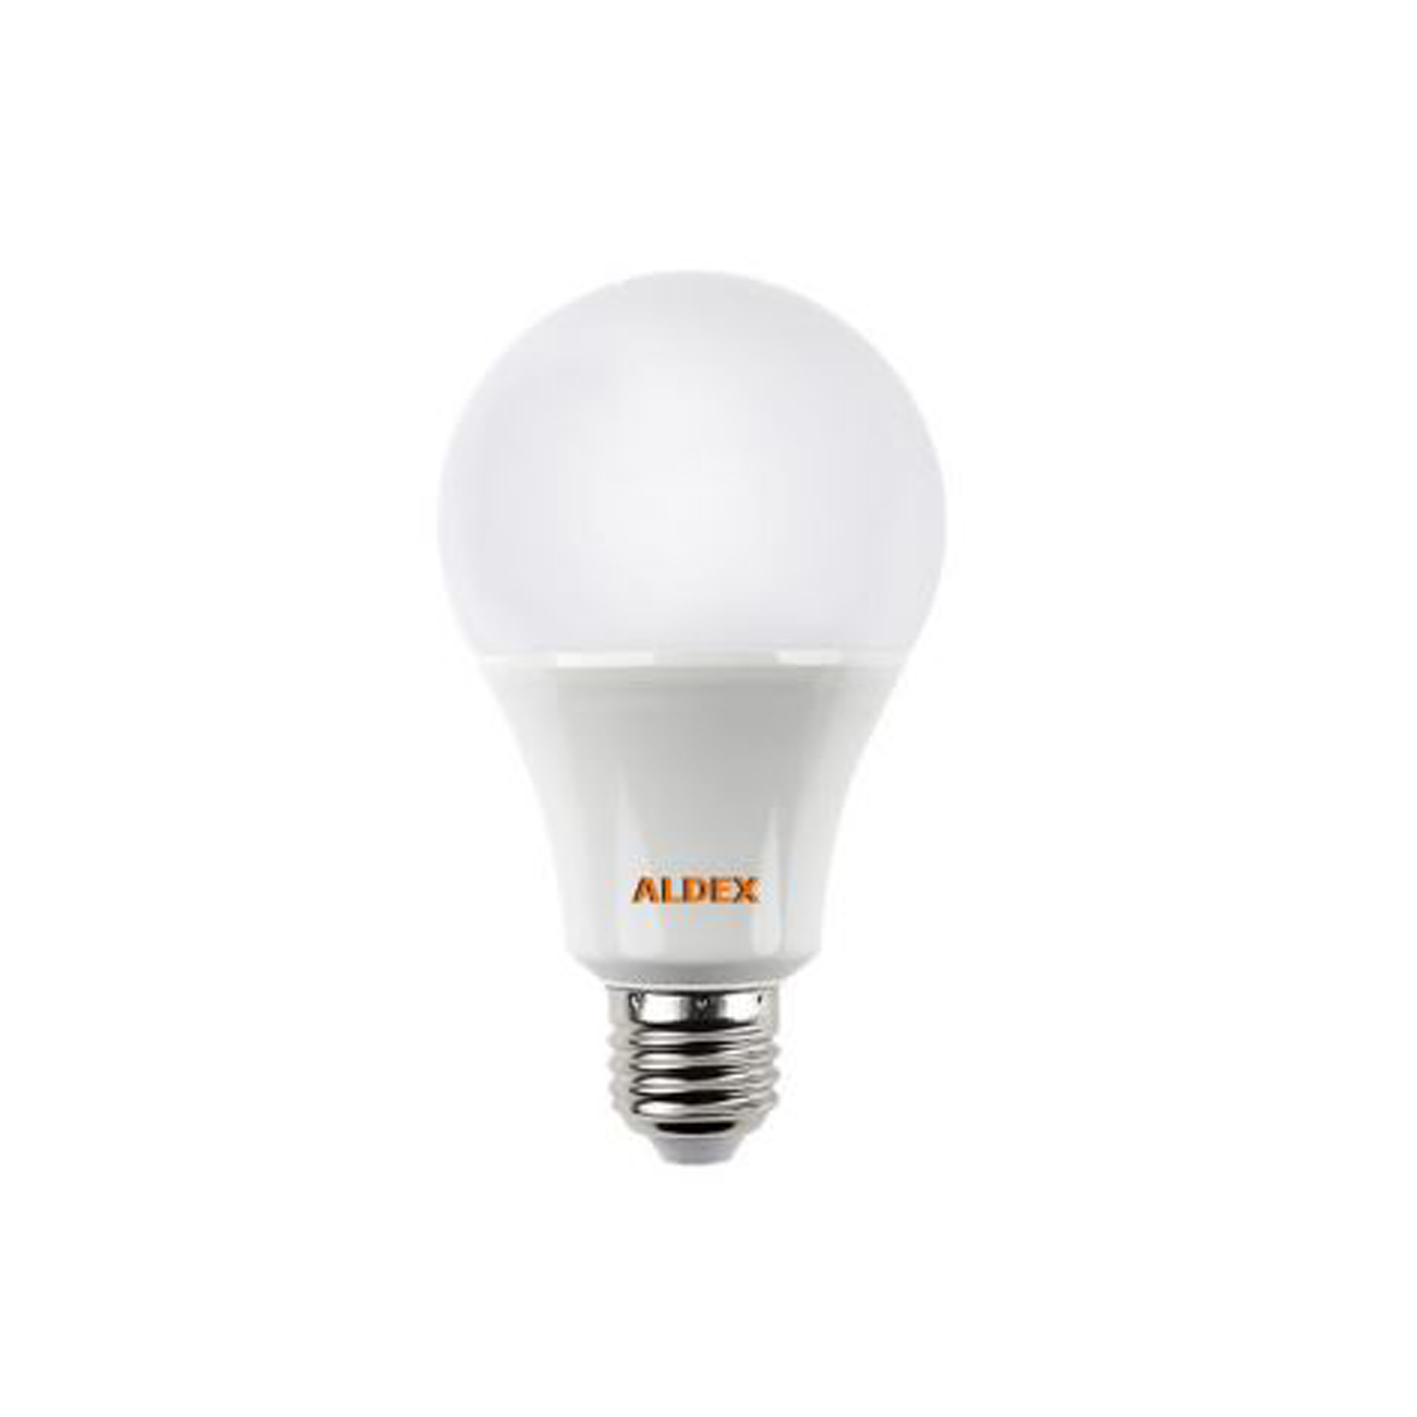 Aldex 7W 6500K E27 Led Ampul